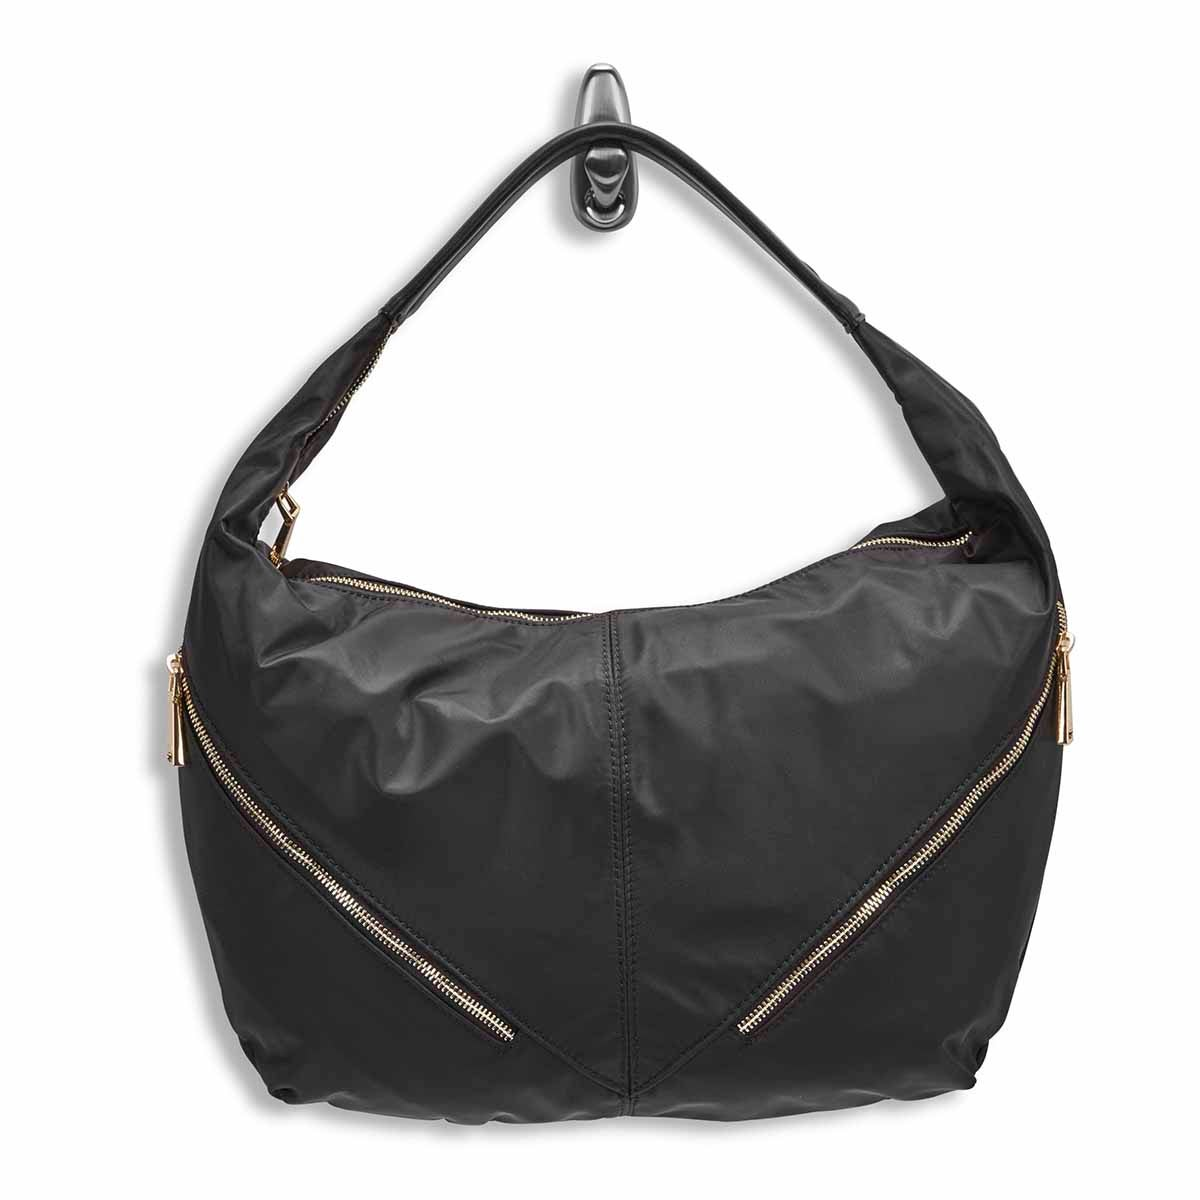 Lds Jessie black slouchy hobo bag